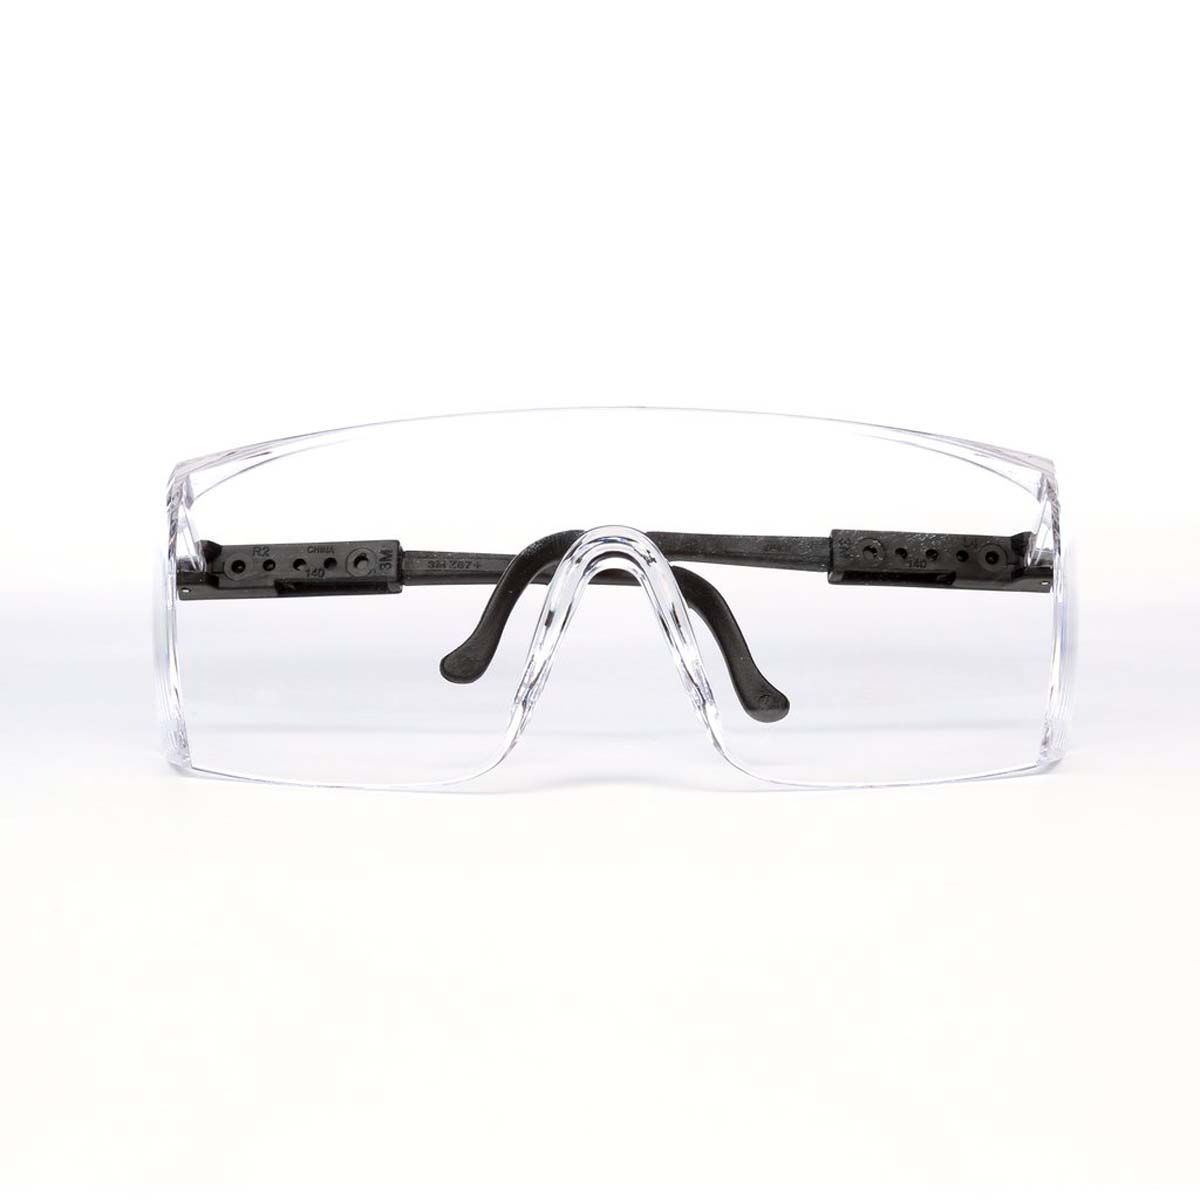 "3Mâ""¢ Seepro Plusâ""¢ Fighter Protective Eyewear 15957-00000-100 Clear Lens, Black Temple"